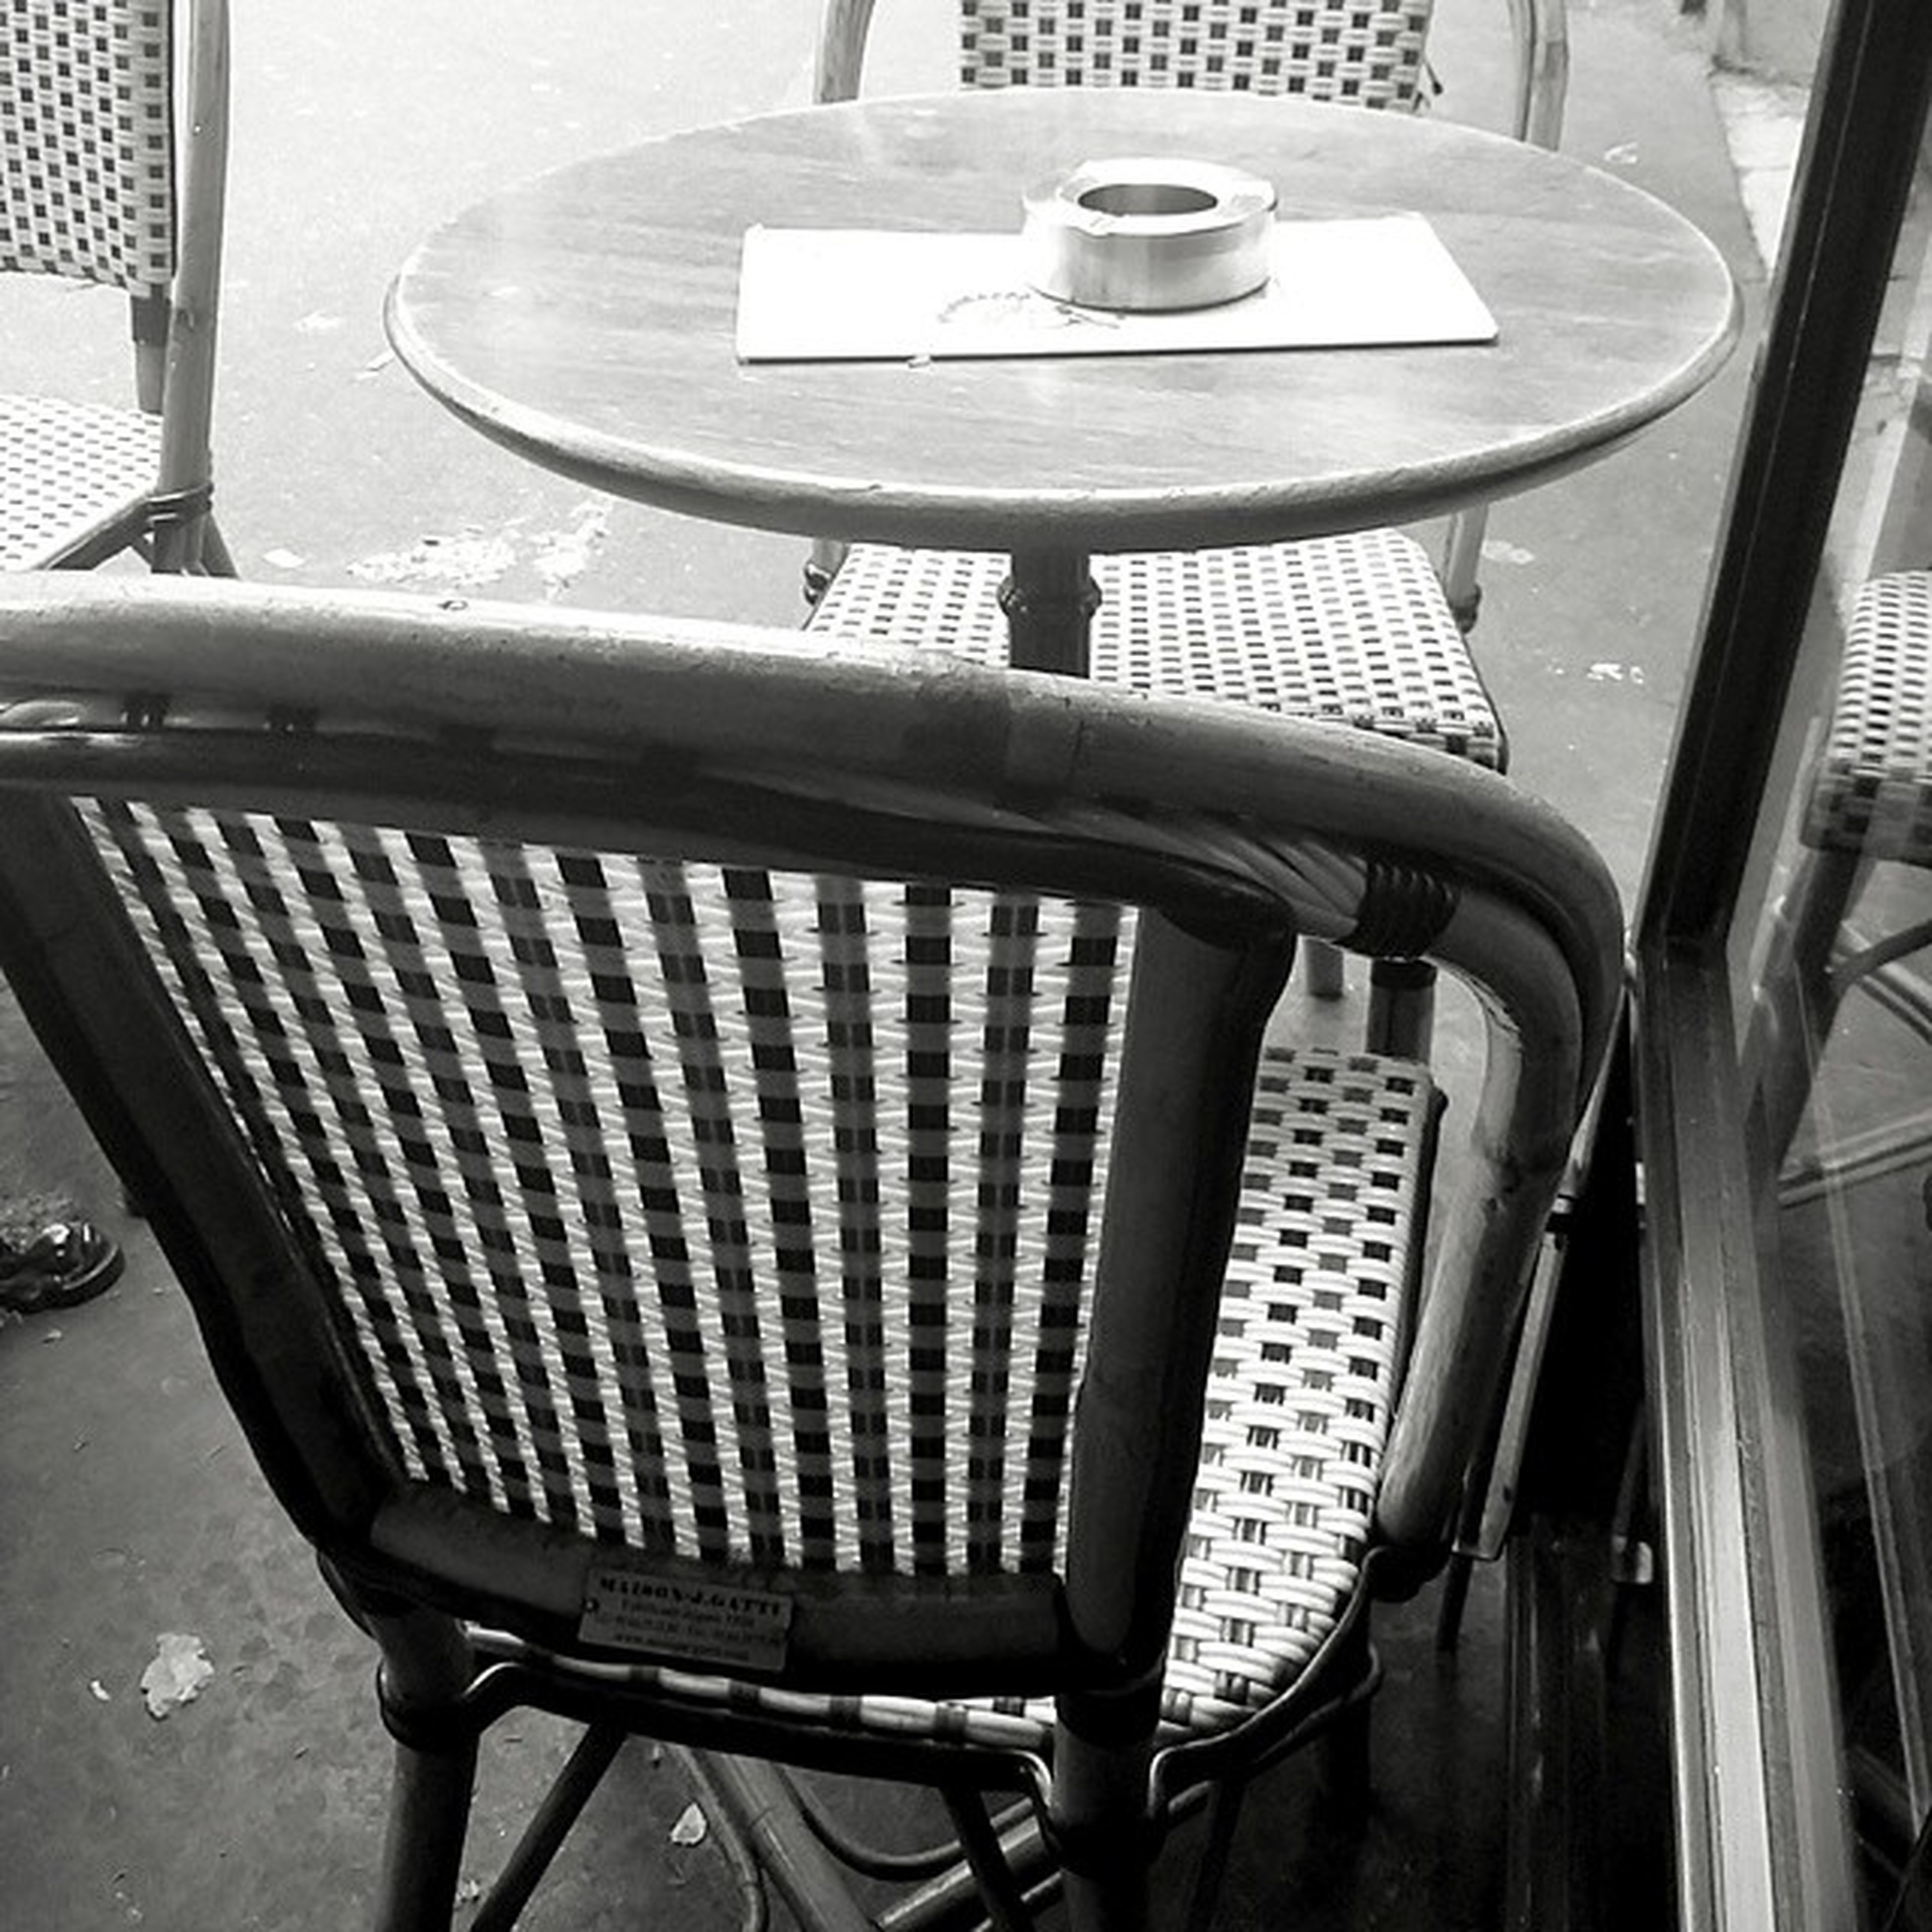 chair, indoors, metal, table, absence, empty, no people, lighting equipment, day, metallic, close-up, seat, hanging, old-fashioned, sunlight, still life, focus on foreground, built structure, railing